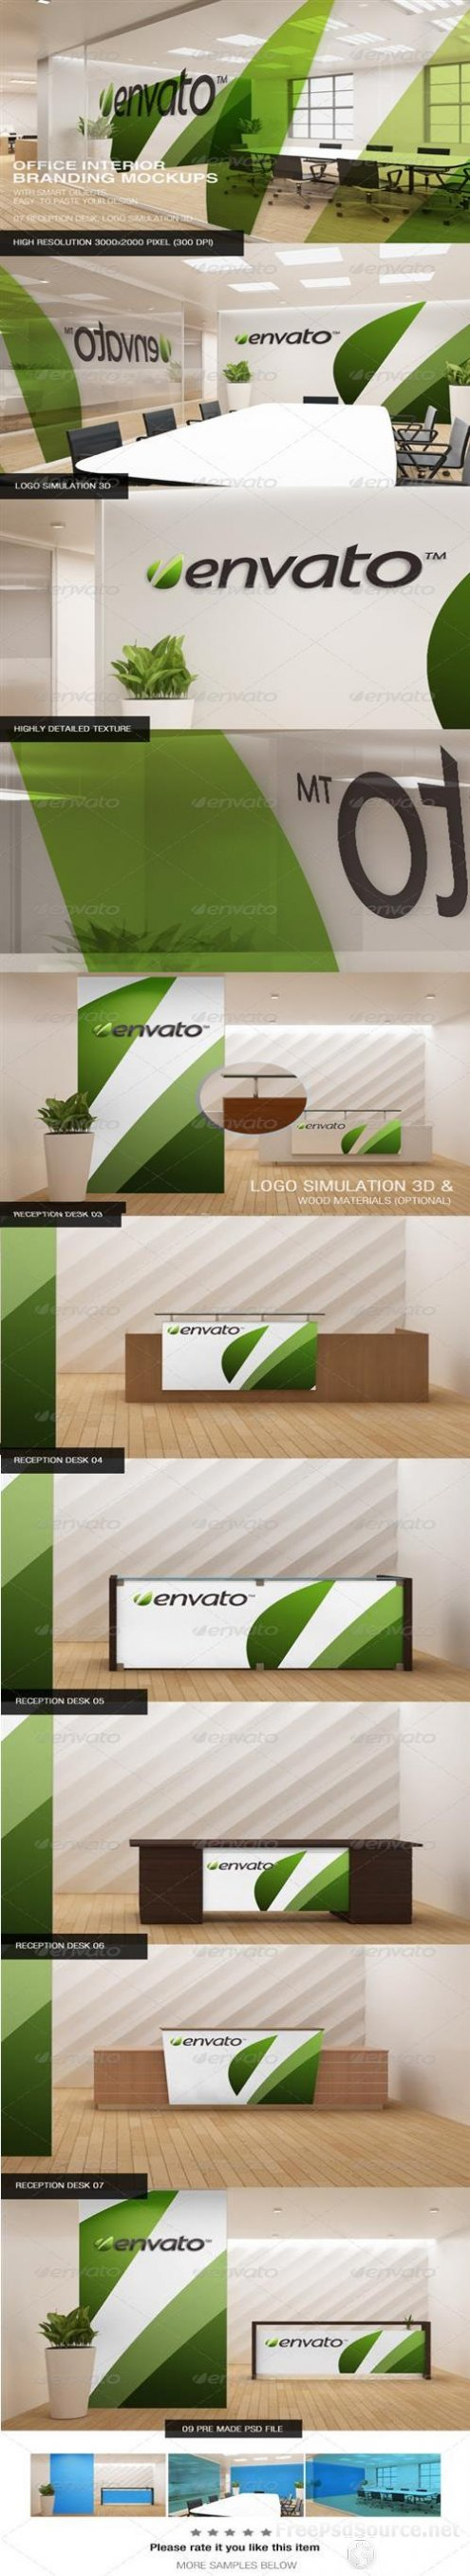 PSD Office Interior Branding Mockups Graphicriver Free Download Psd Source Tutorials